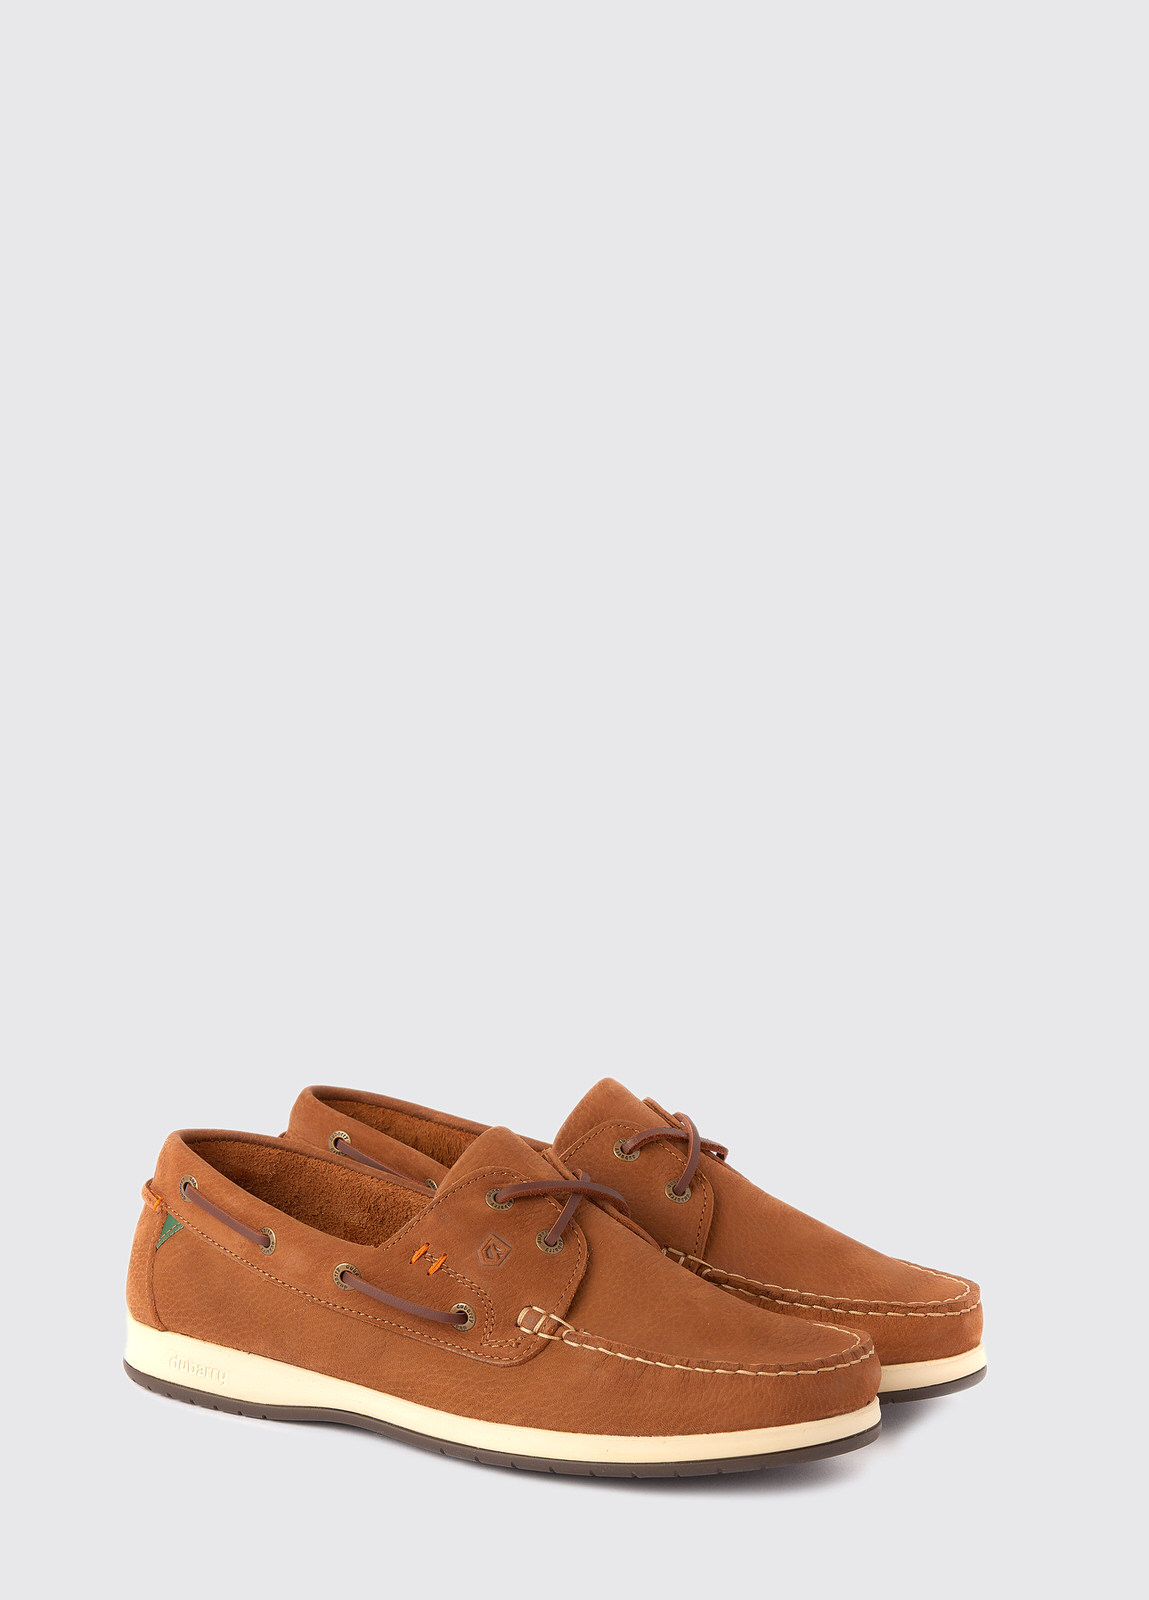 Armada X LT Deck shoes - Brown